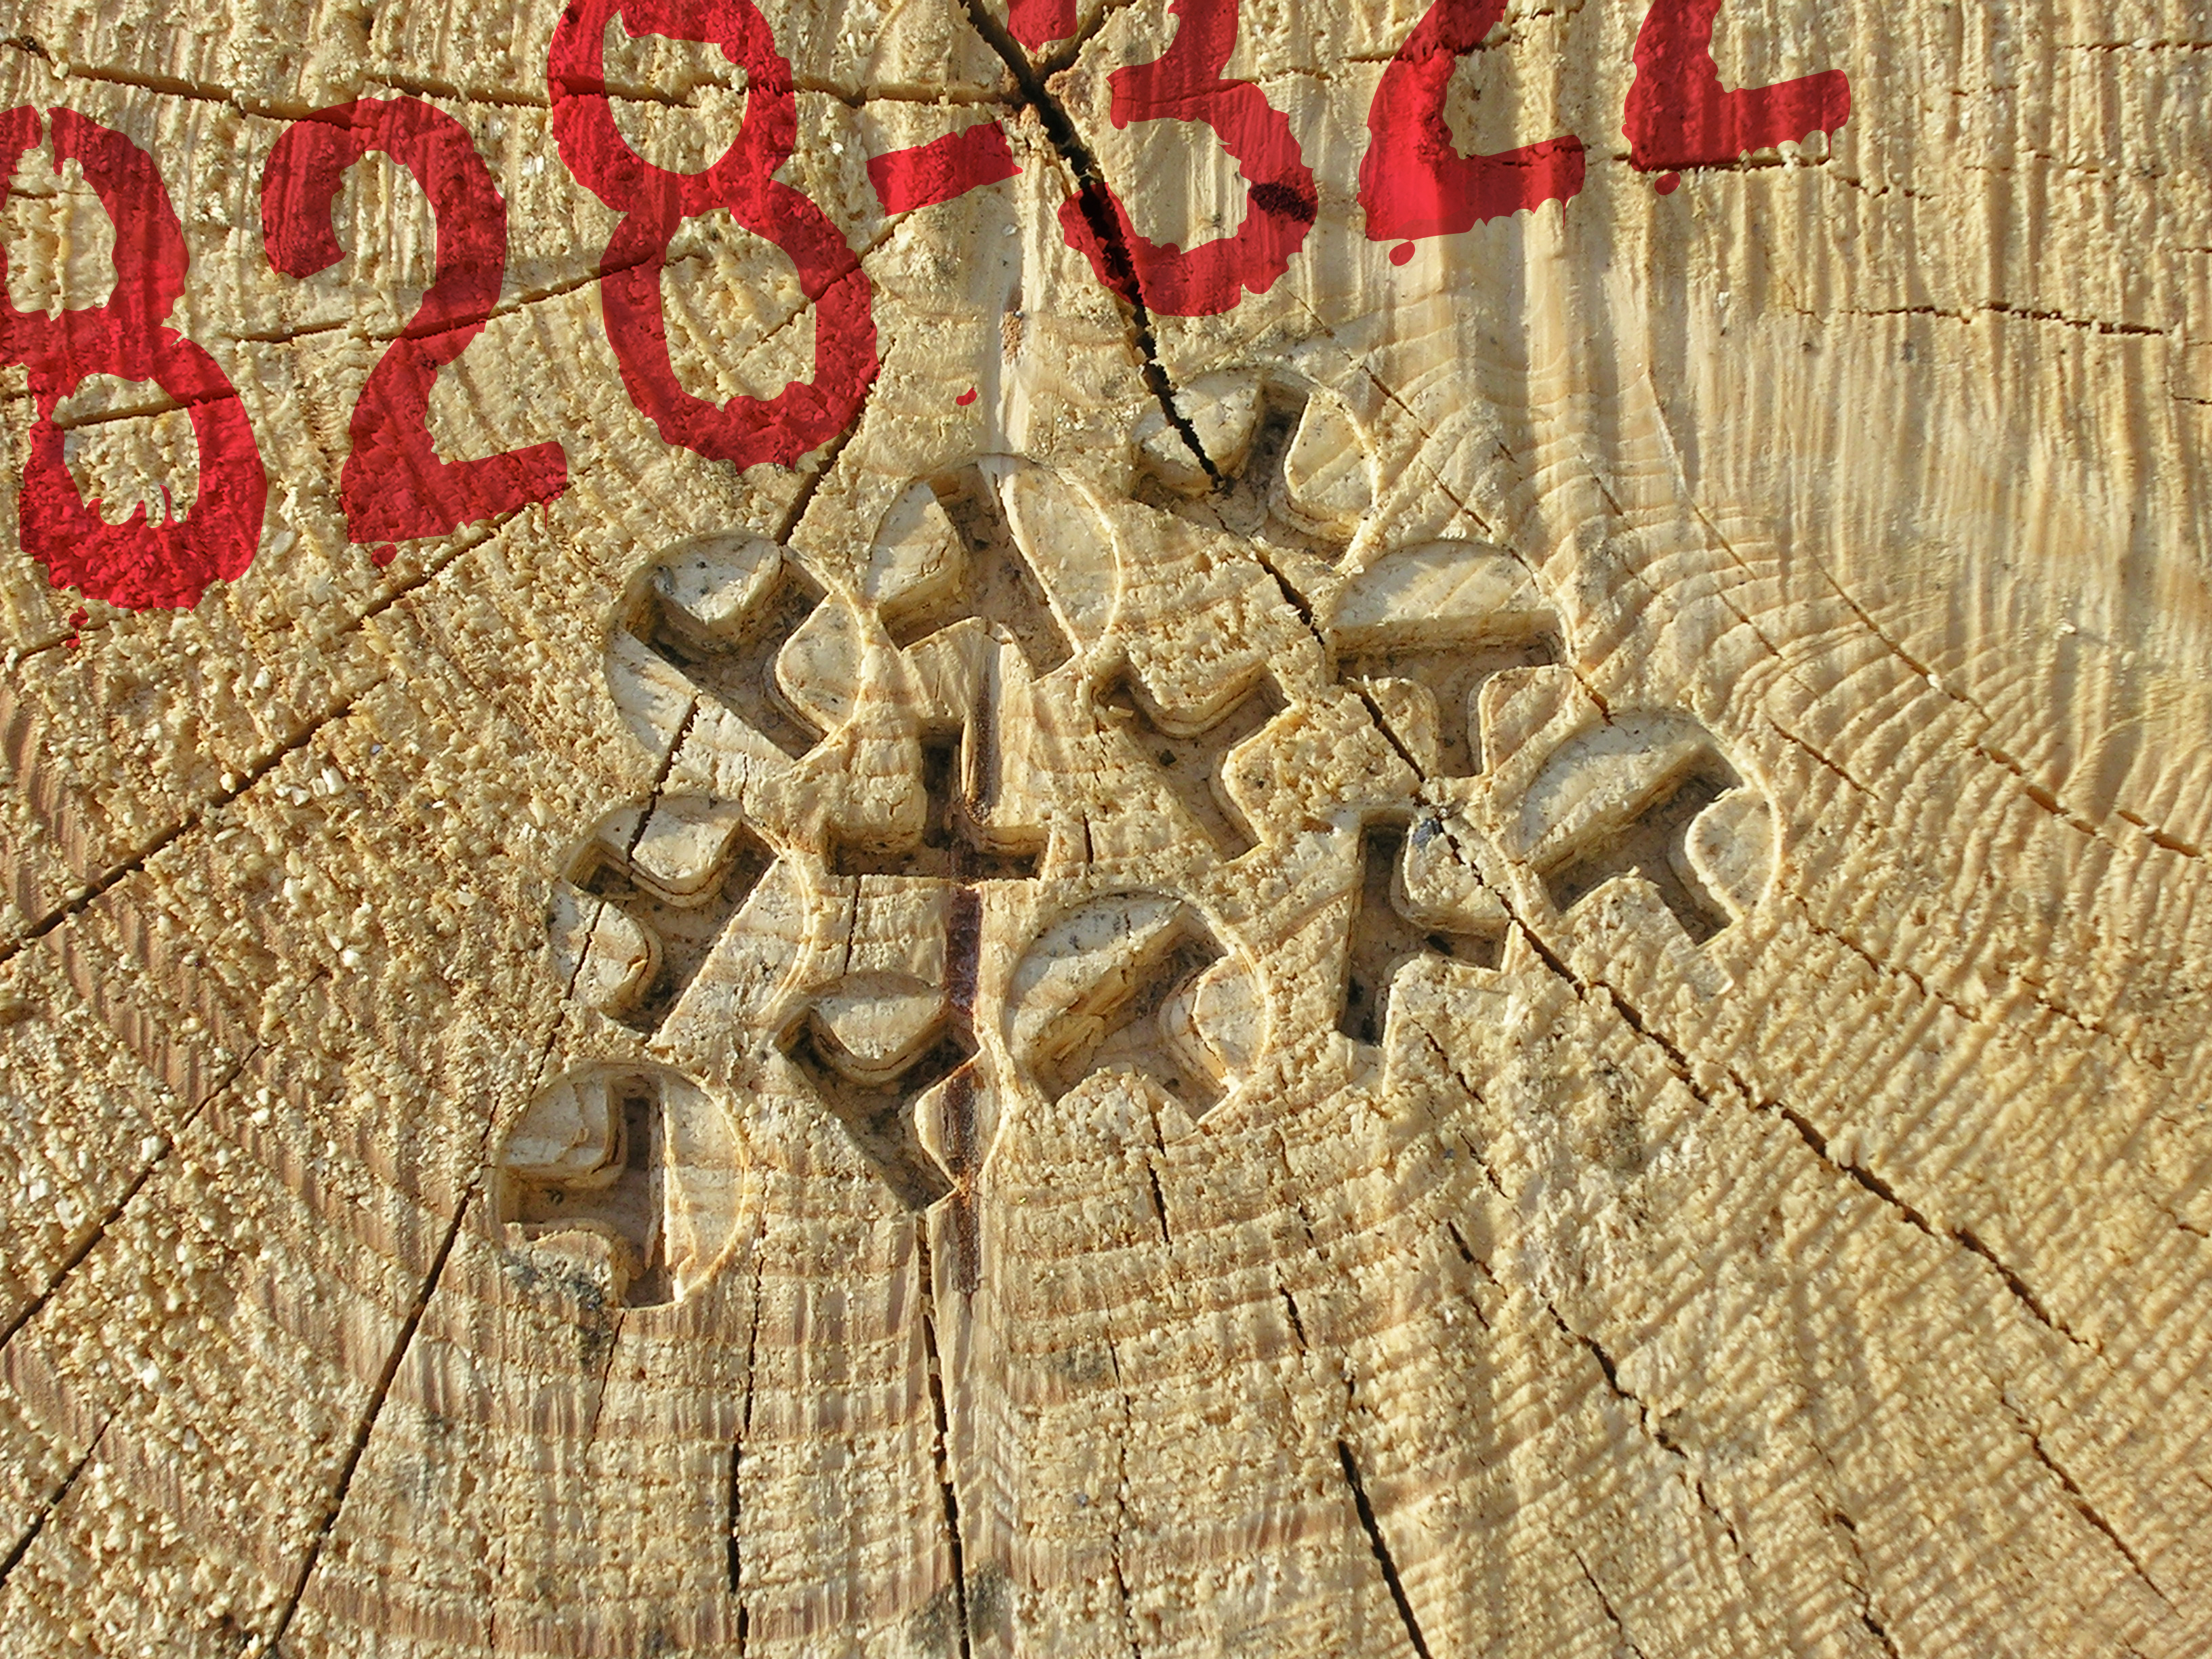 When OtmetkaID is stamped into the log, customizations can be made as markings with numbers or text, labels with a QR code, numbers and RFID or color codes.